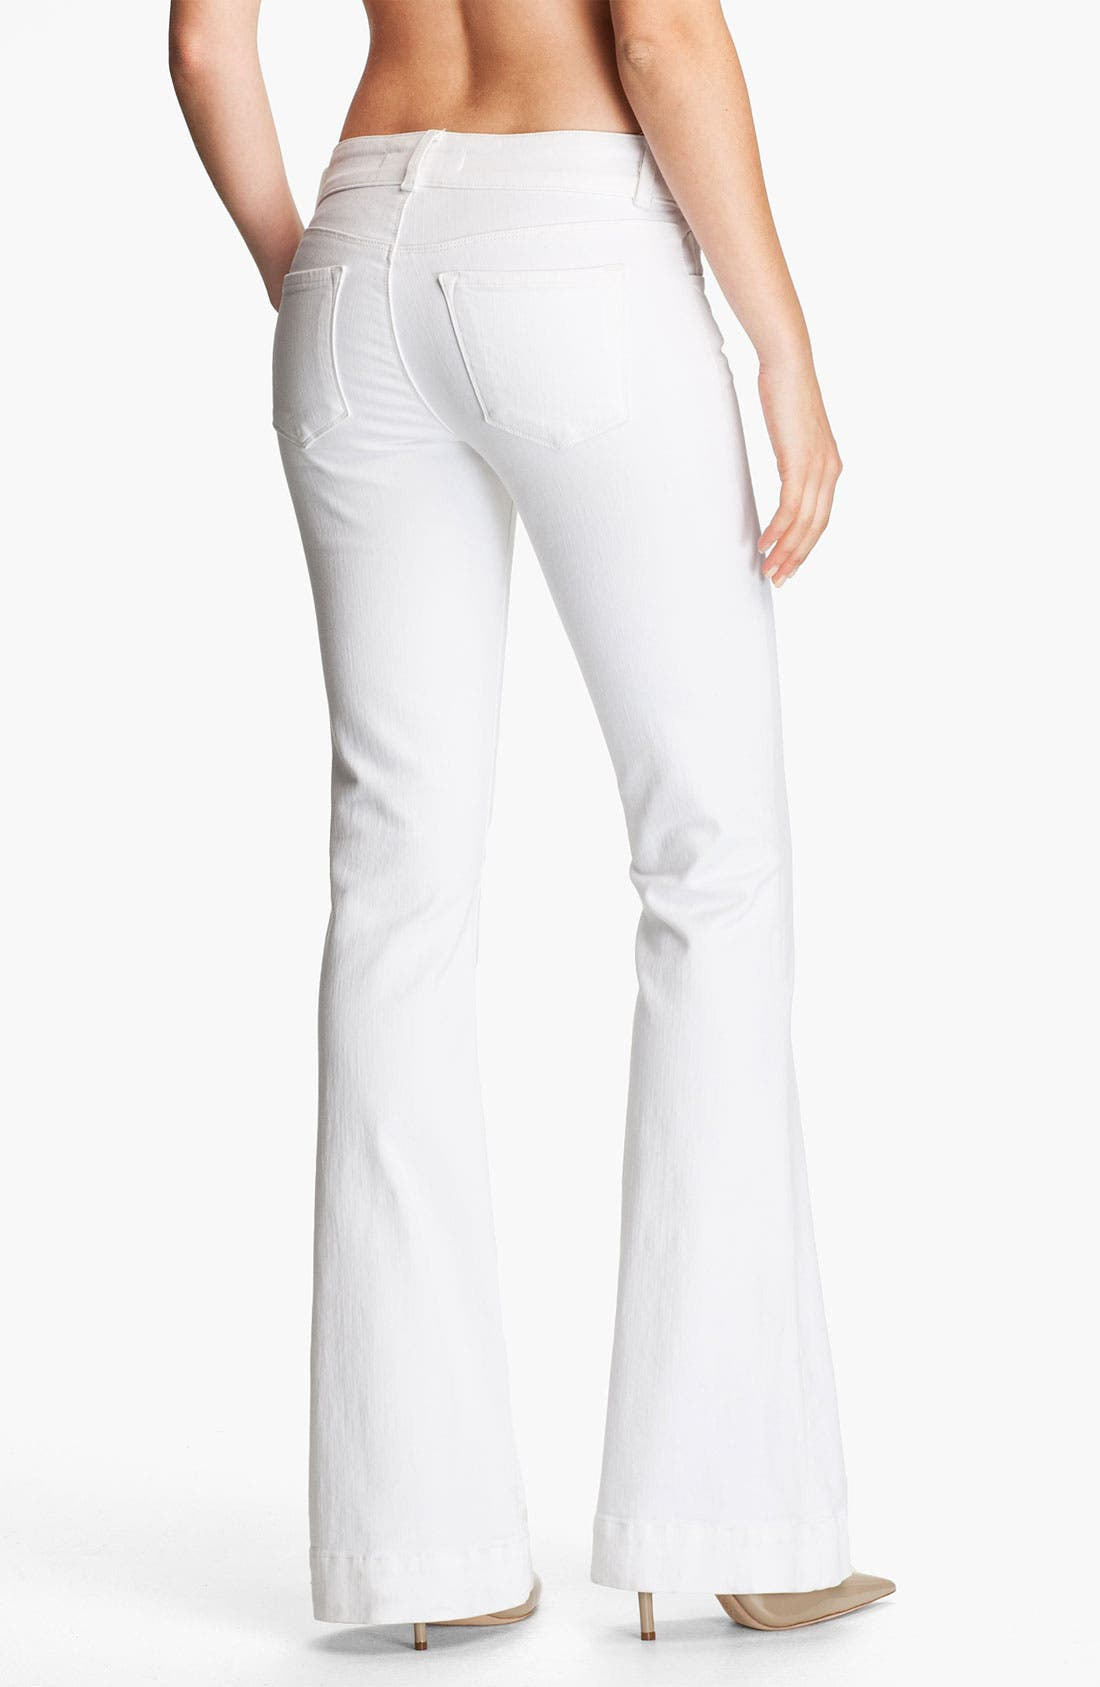 Alternate Image 2  - J Brand Low Rise Bell Bottom Stretch Jeans (Blanc)